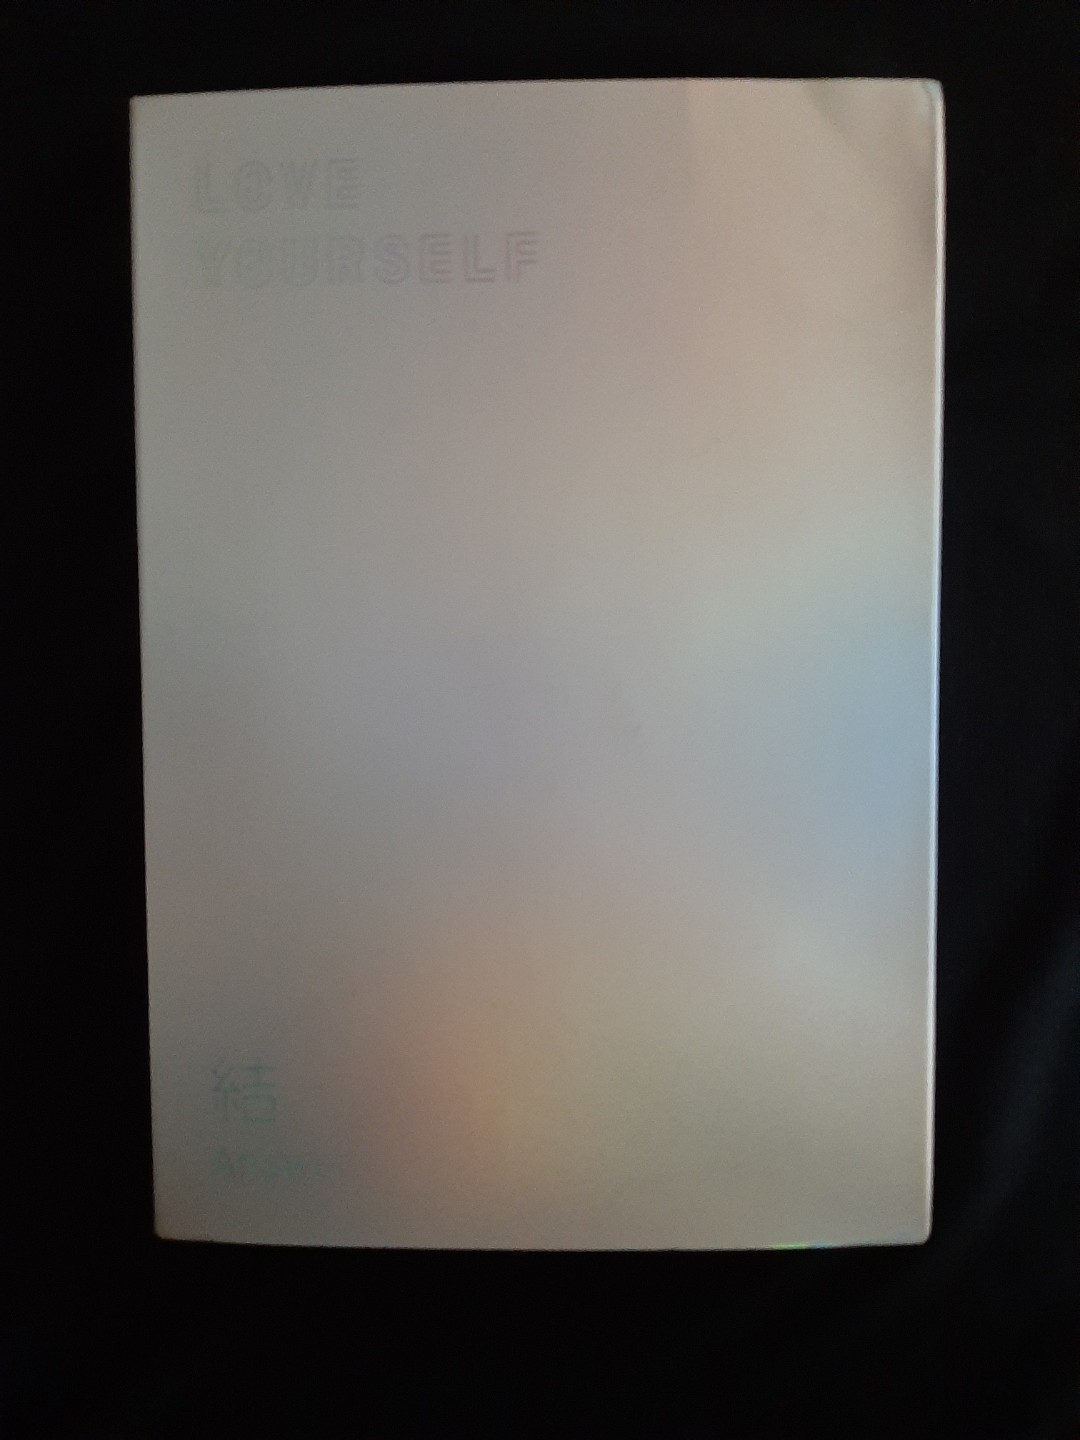 BTS ALBUM: LOVE YOURSELF ANSWER; S VERSION UNSEALED WITH SUGA PC